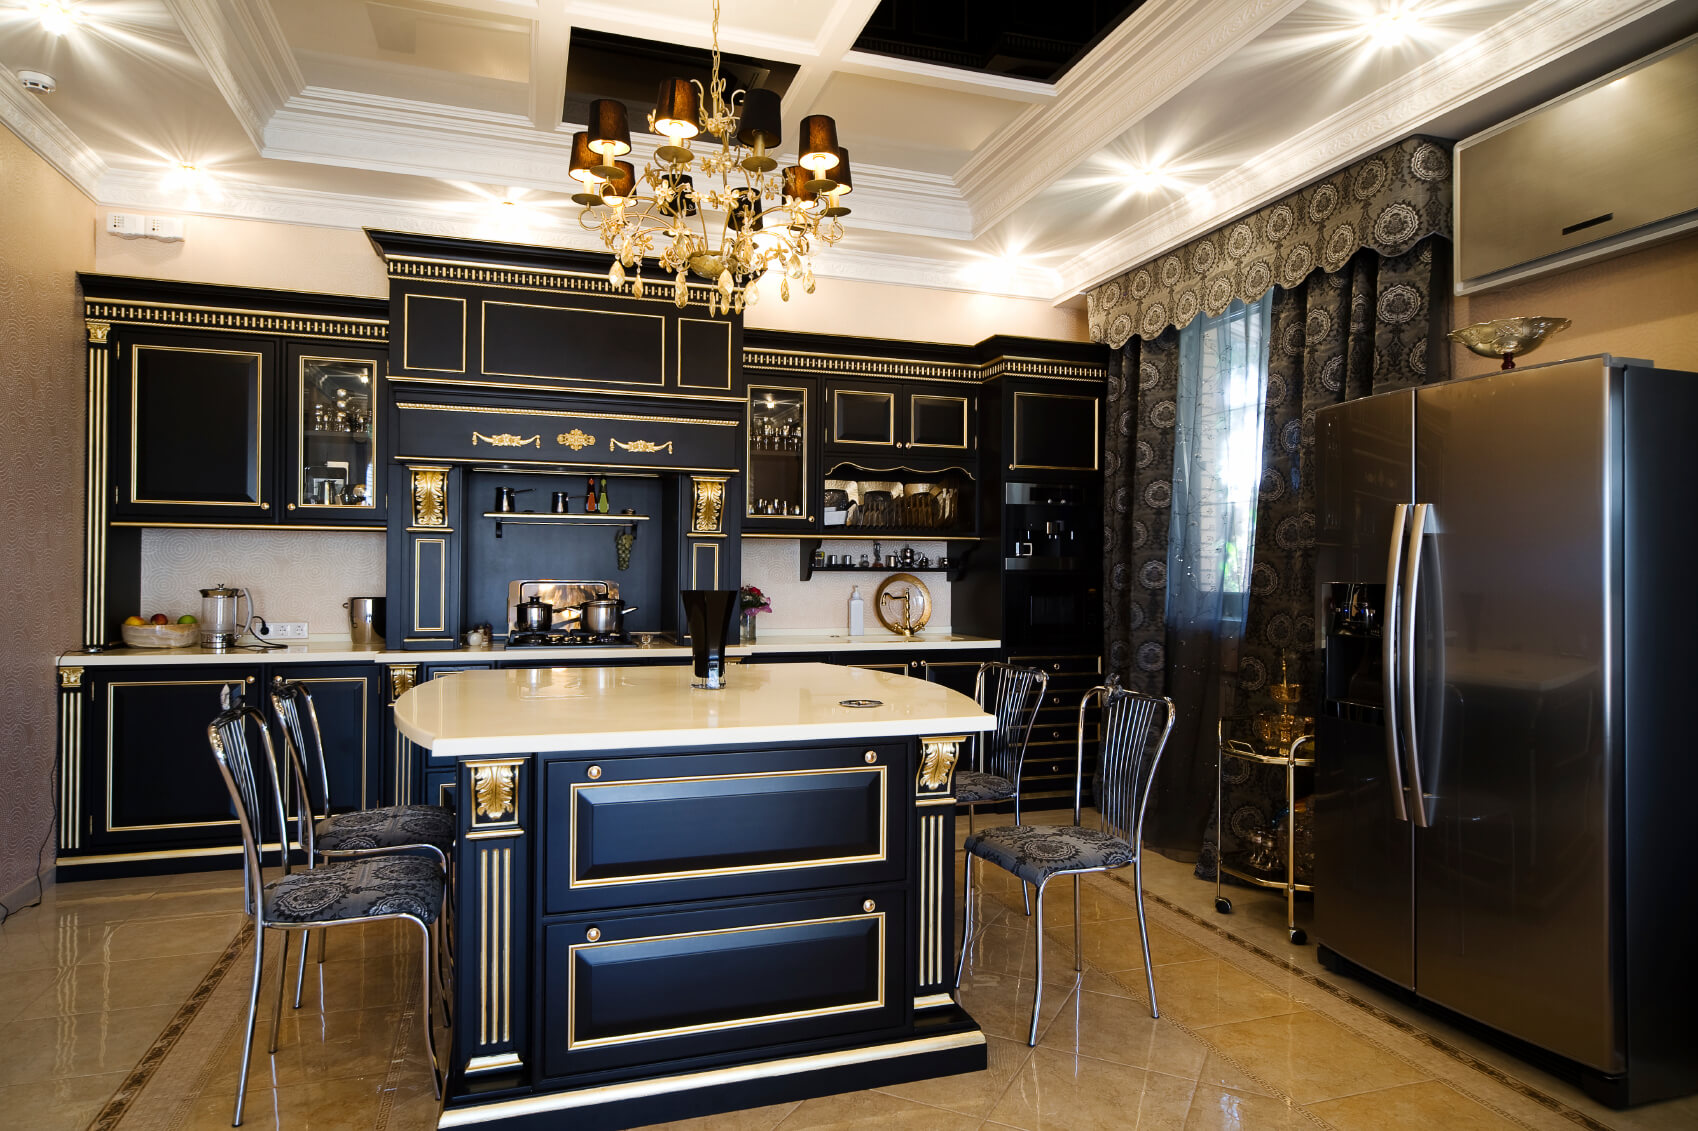 dark kitchen cabinets cabinets kitchen Ultra luxurious kitchen features gilded black wood cabinetry over beige marble flooring White marble countertops